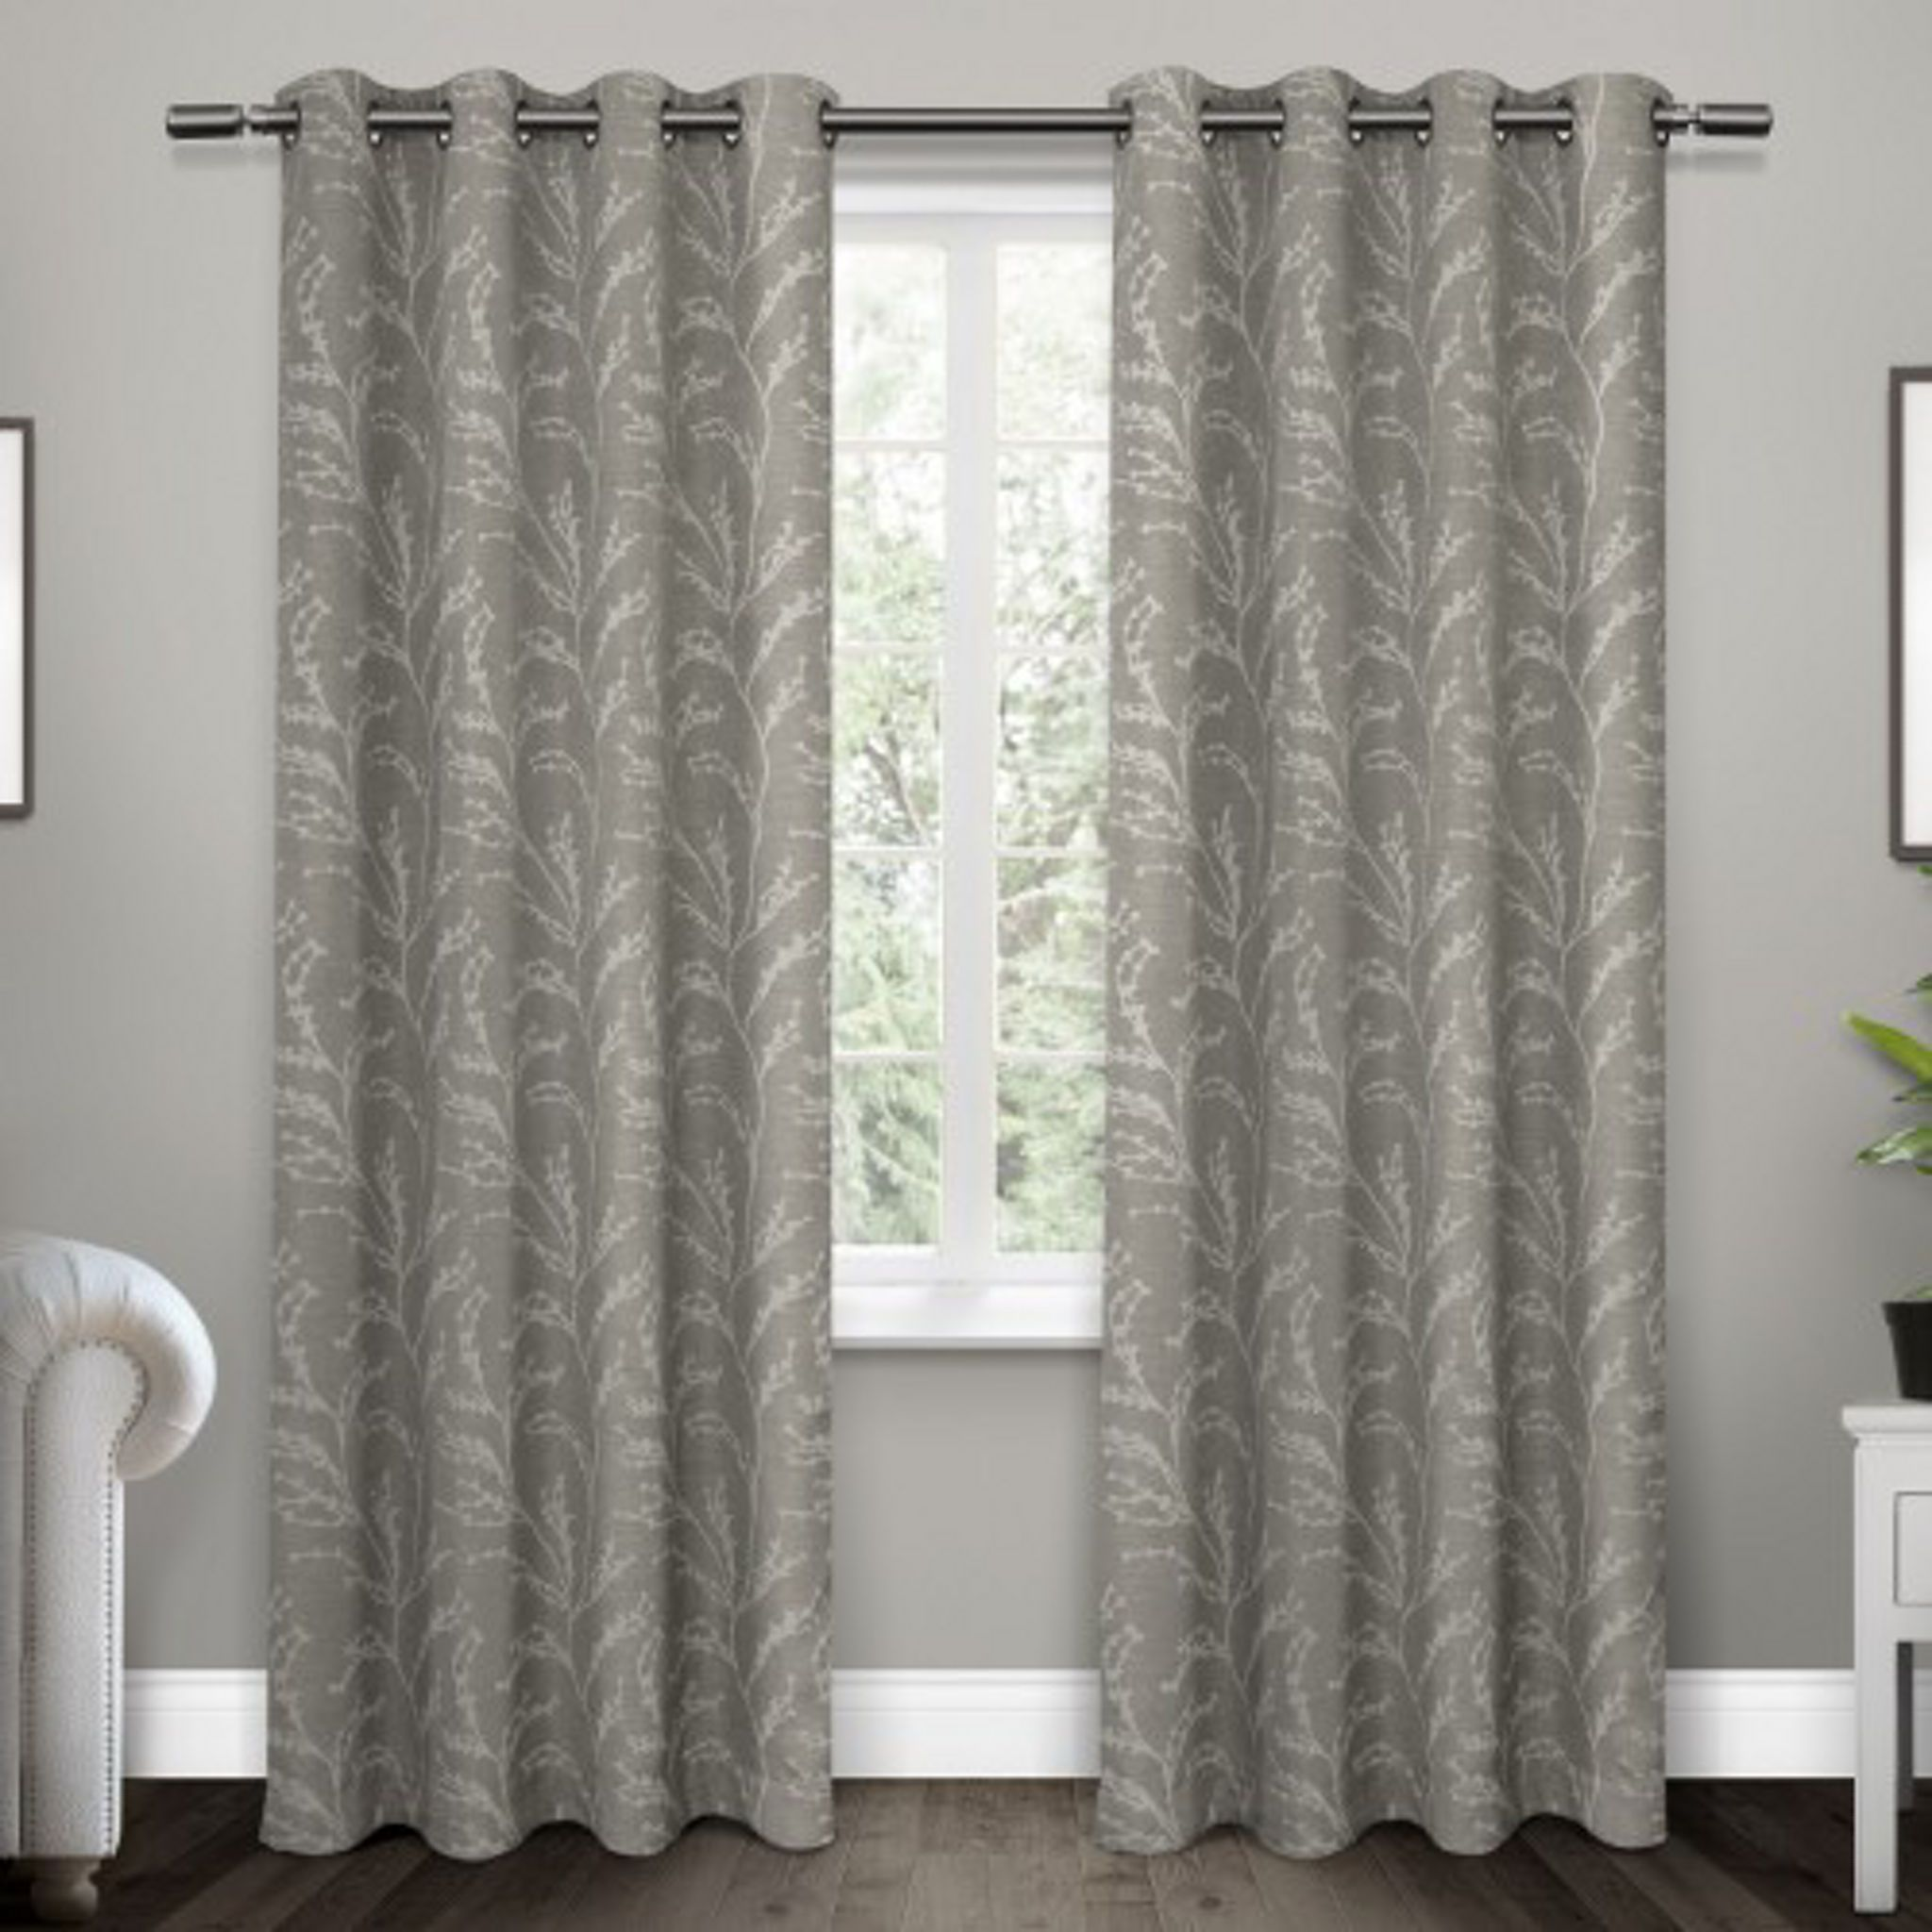 velvet blue marrakech homey curtains green kirklands set blackout and curtain idea whitney inch in panel solid grommet looking majestic drapes